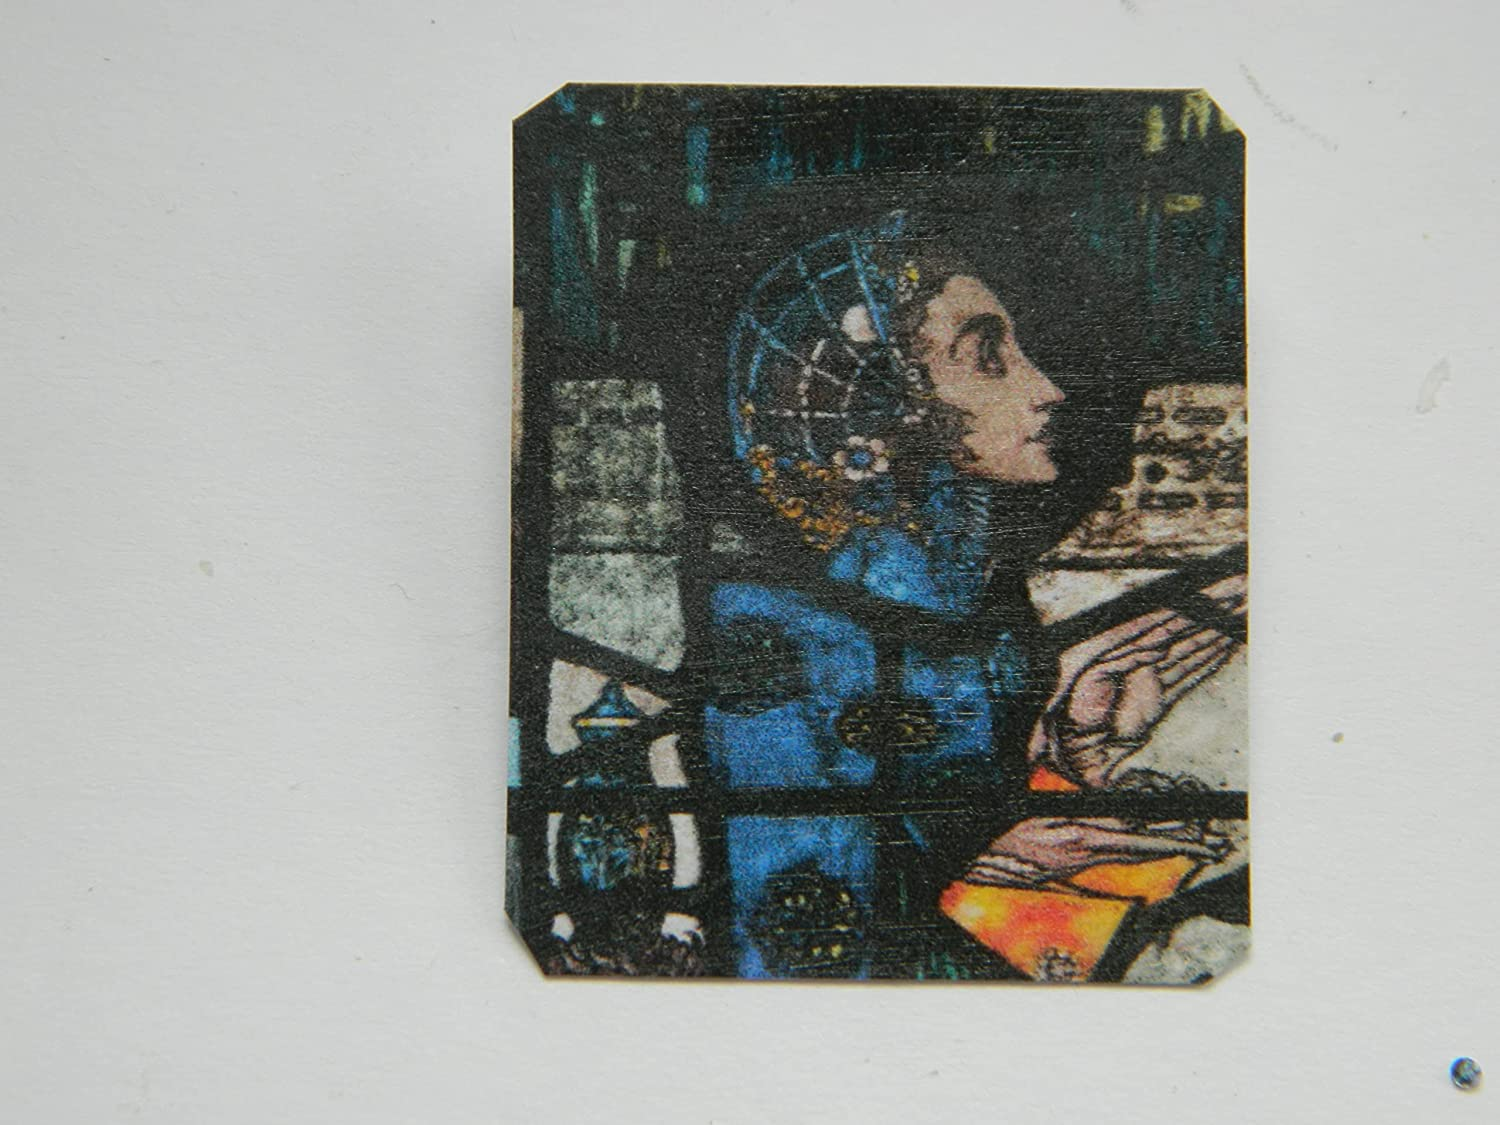 Lapel Pin Harry Clarke Stained Super Special SALE held Detail Blue Max 56% OFF Figure in Glass